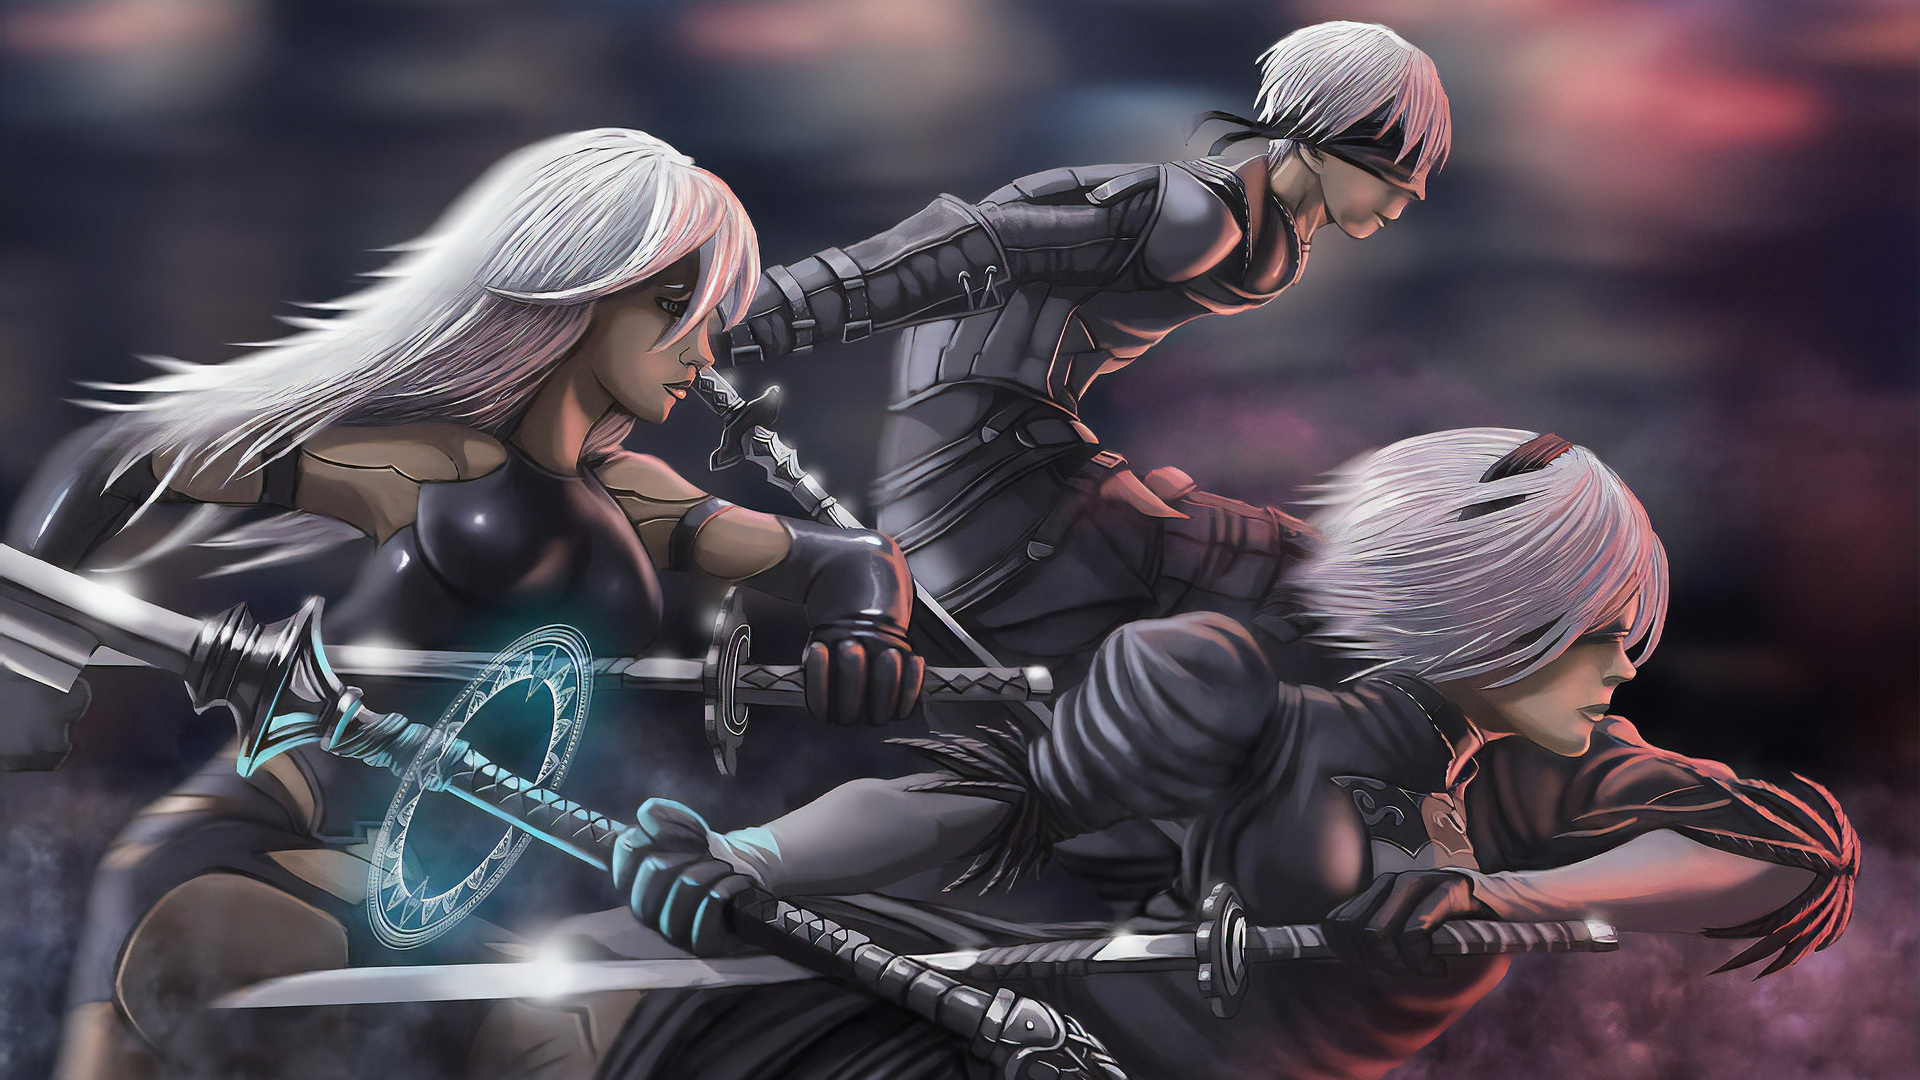 1920x1080 Nier Automata Team Laptop Full Hd 1080p Hd 4k Wallpapers Images Backgrounds Photos And Pictures